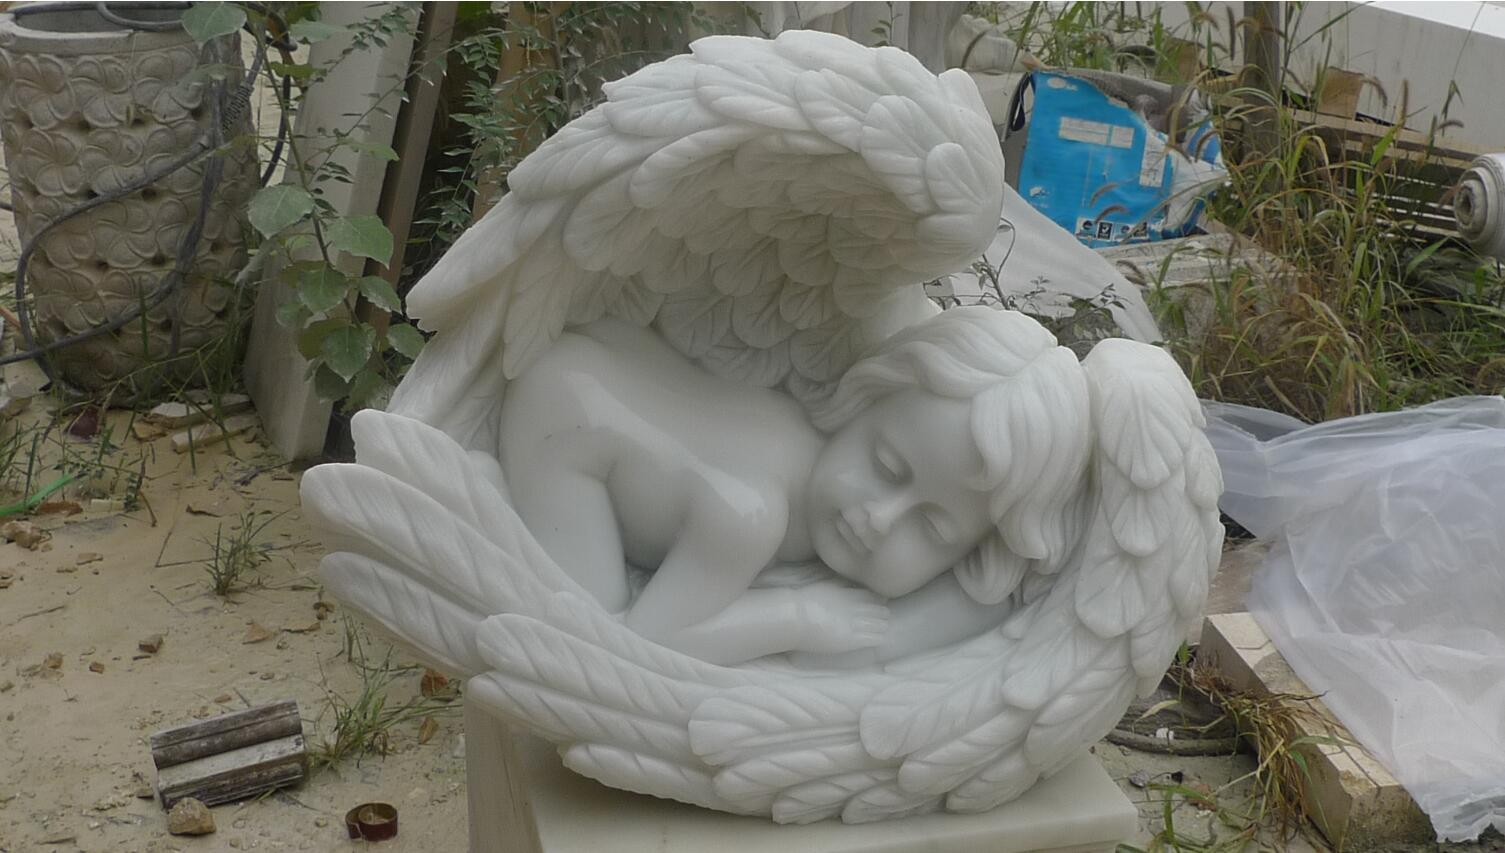 Carved marble sleeping baby statue